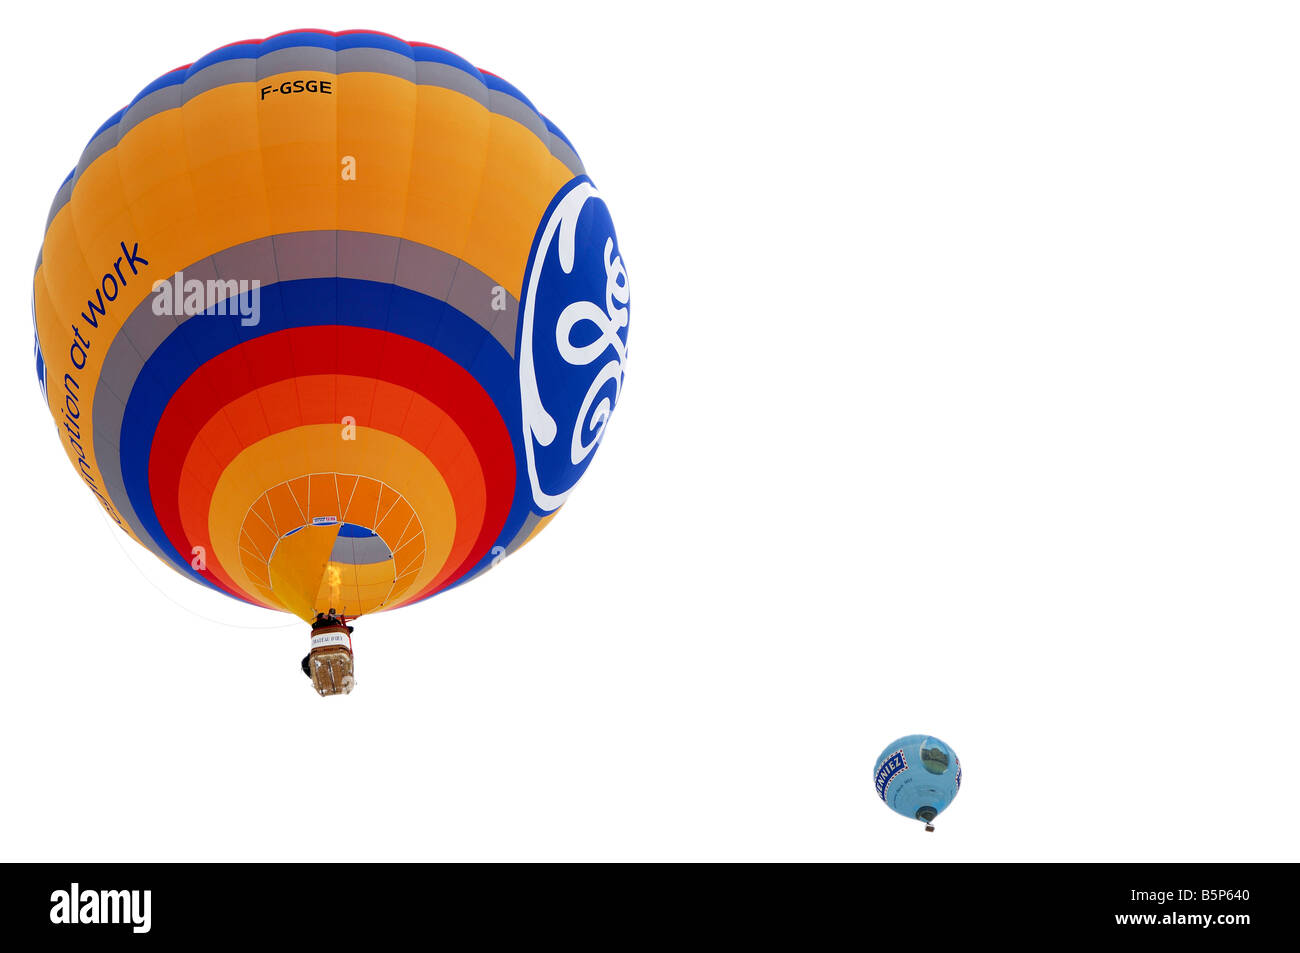 Montgolfier F GSGE Model CAMERON Z 120 Sponsor GE Energy Products, International Balloon Festival, Chateau d Oex, - Stock Image